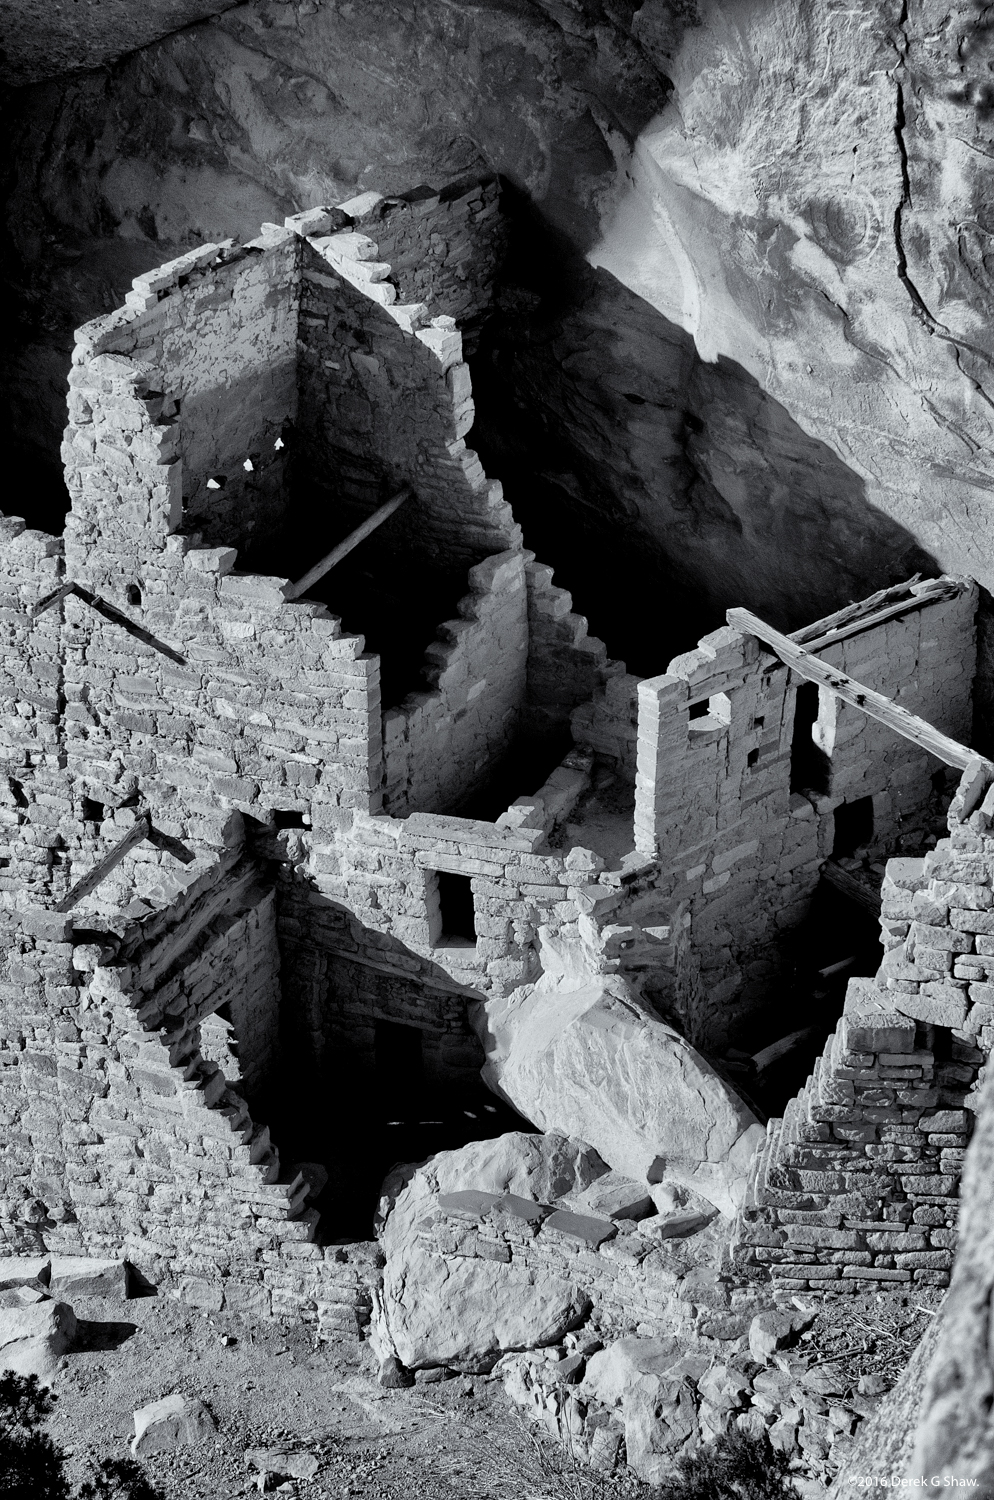 Square Tower House and Petroglyph (Upper Right)